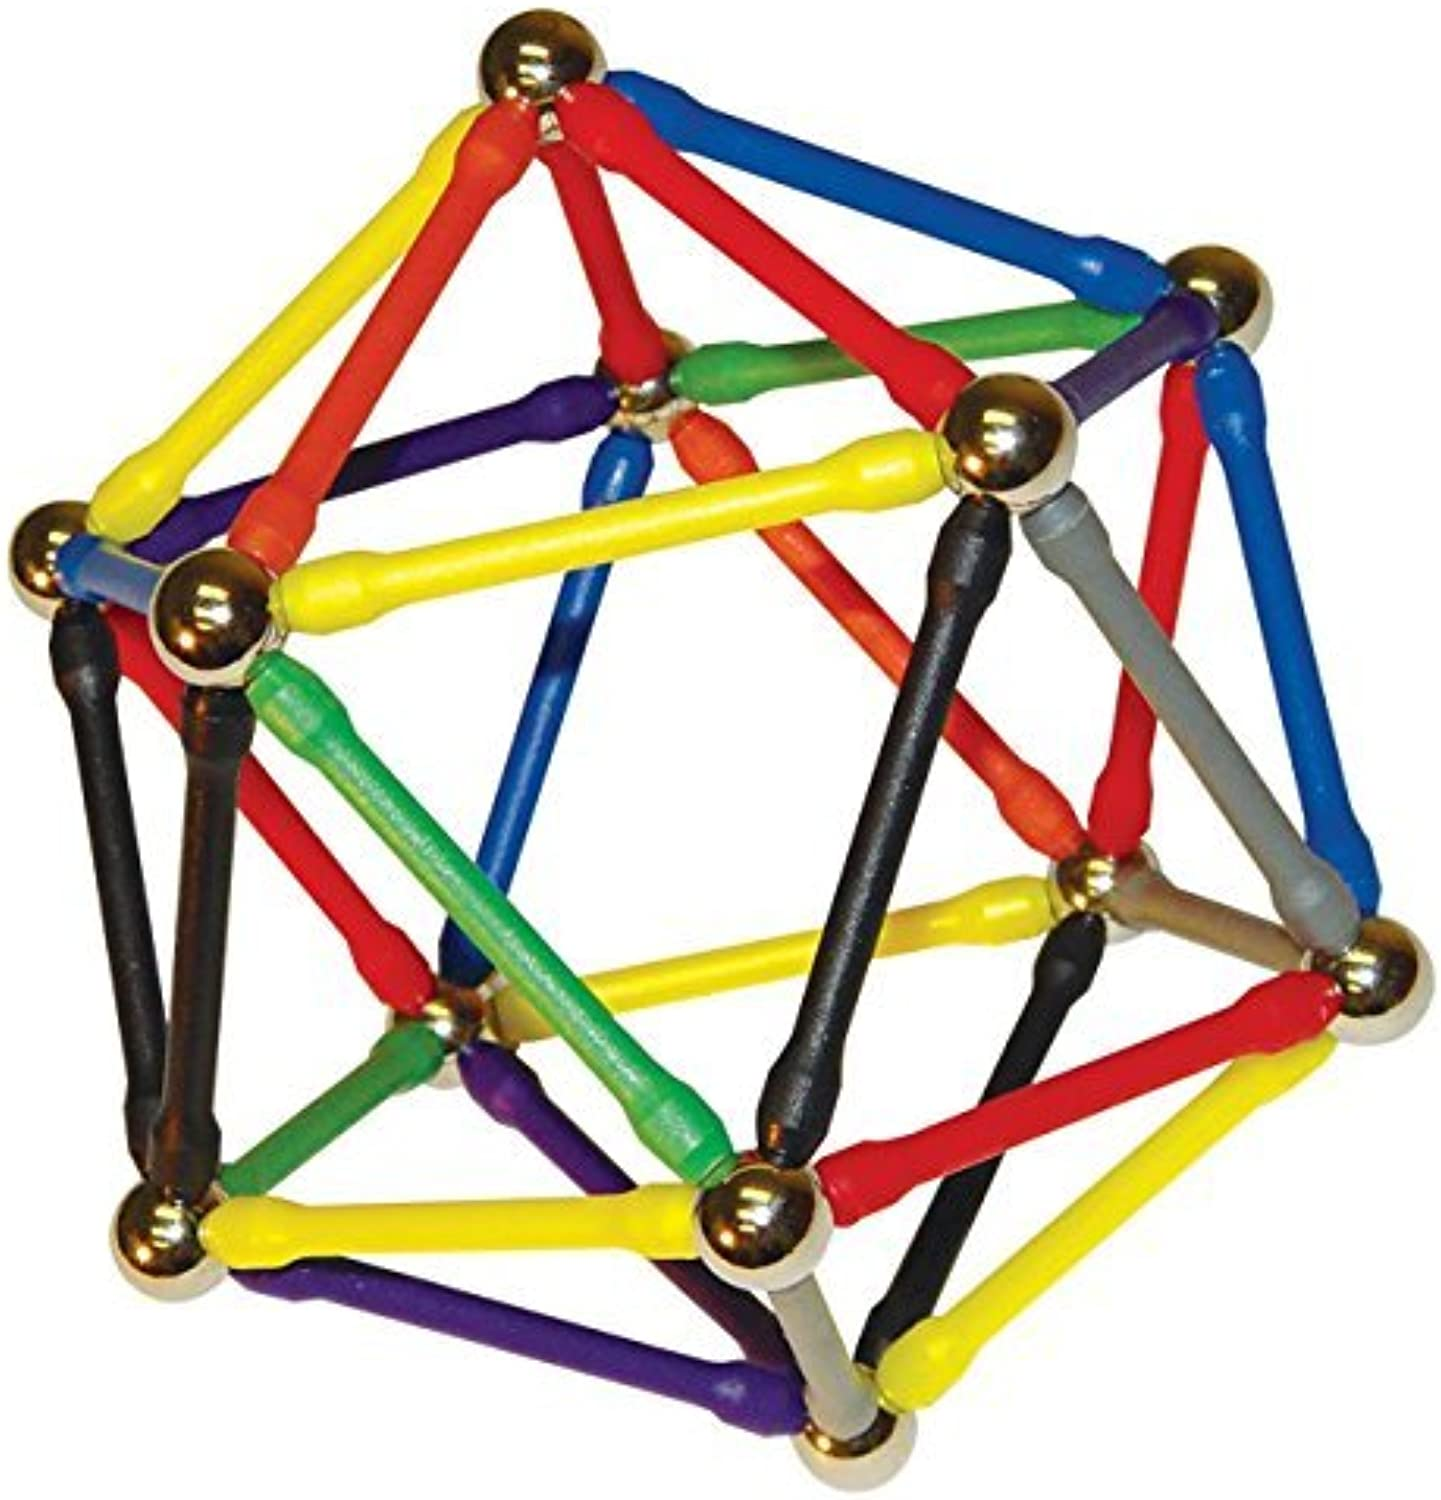 DynaMagz114 containing 66 magnetized rods at 2.3 length and 48 steel balls at 0.5 diameter offered by MAGZ by Magz